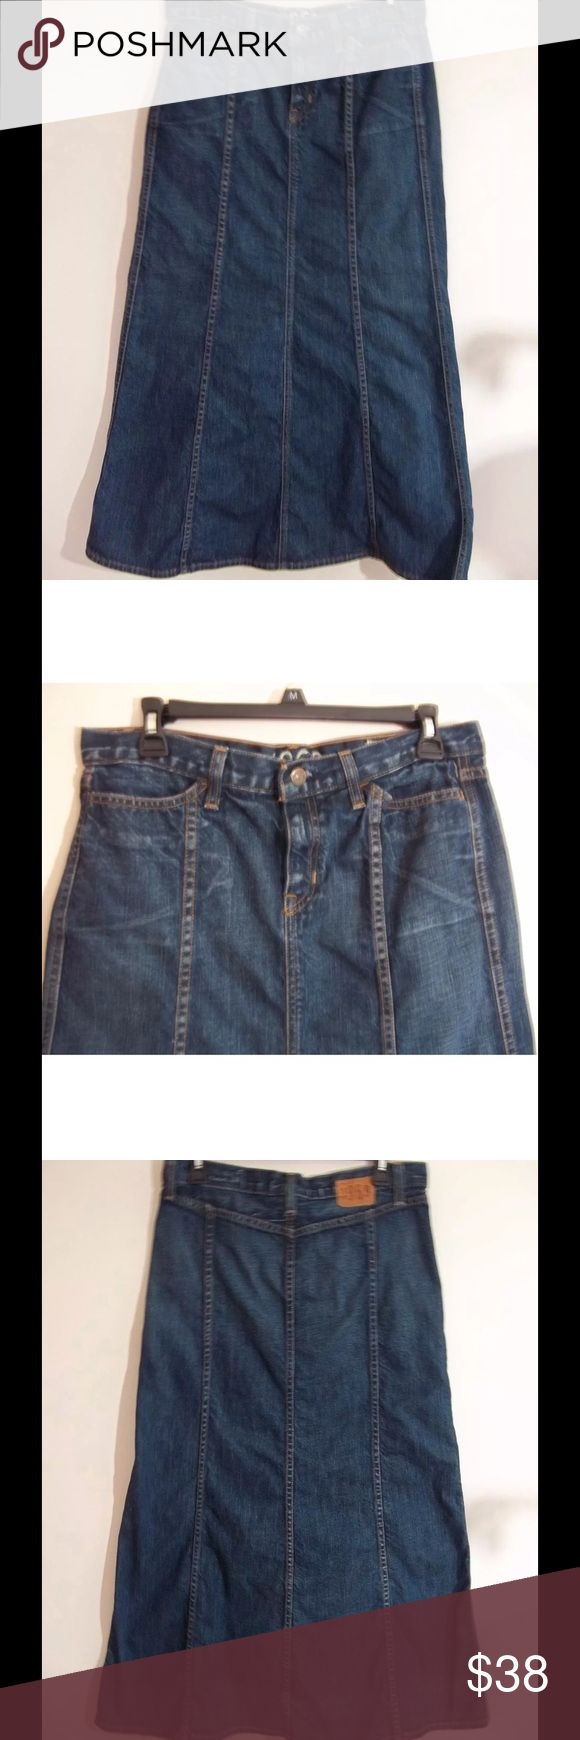 Gap Women's Denim Jean Skirt Long Modest Sz 6 GAP Women's Jean Skirt Long Denim Size 6 Modest Blue Seamed Distressed Zip Front  Brand: Gap Color: Blue  Size: 6 Style: Long modest denim jean skirt Material: 100% Cotton Condition: Very gently used. No rips, holes, tears or stains.  Made: USA Length: Long-37 1/2 inches from waist to hem Waist: 33 inches  Additional features: Zip front with button closure. 2 front pockets. Gap 1969 label on back. Belt loops. Seamed down front and back of jean…